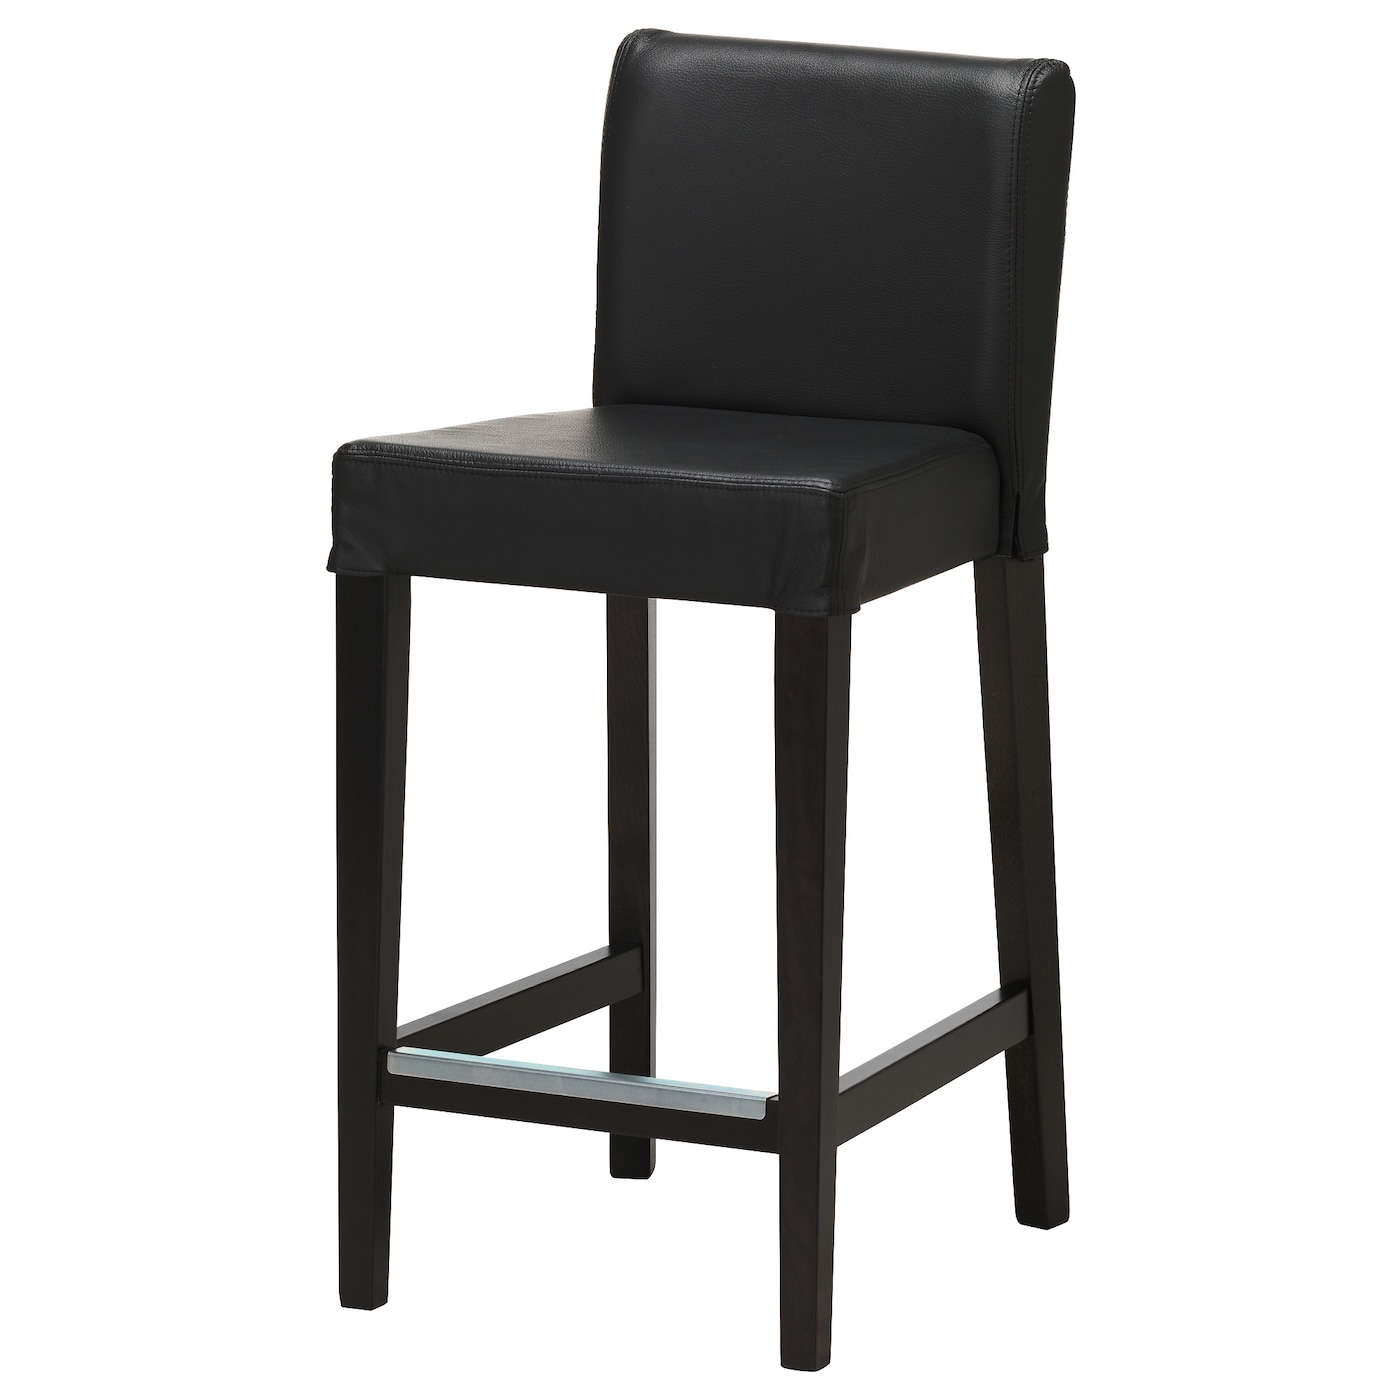 Ikea henriksdal bar stool with backrest the padded seat means you sit comfortably